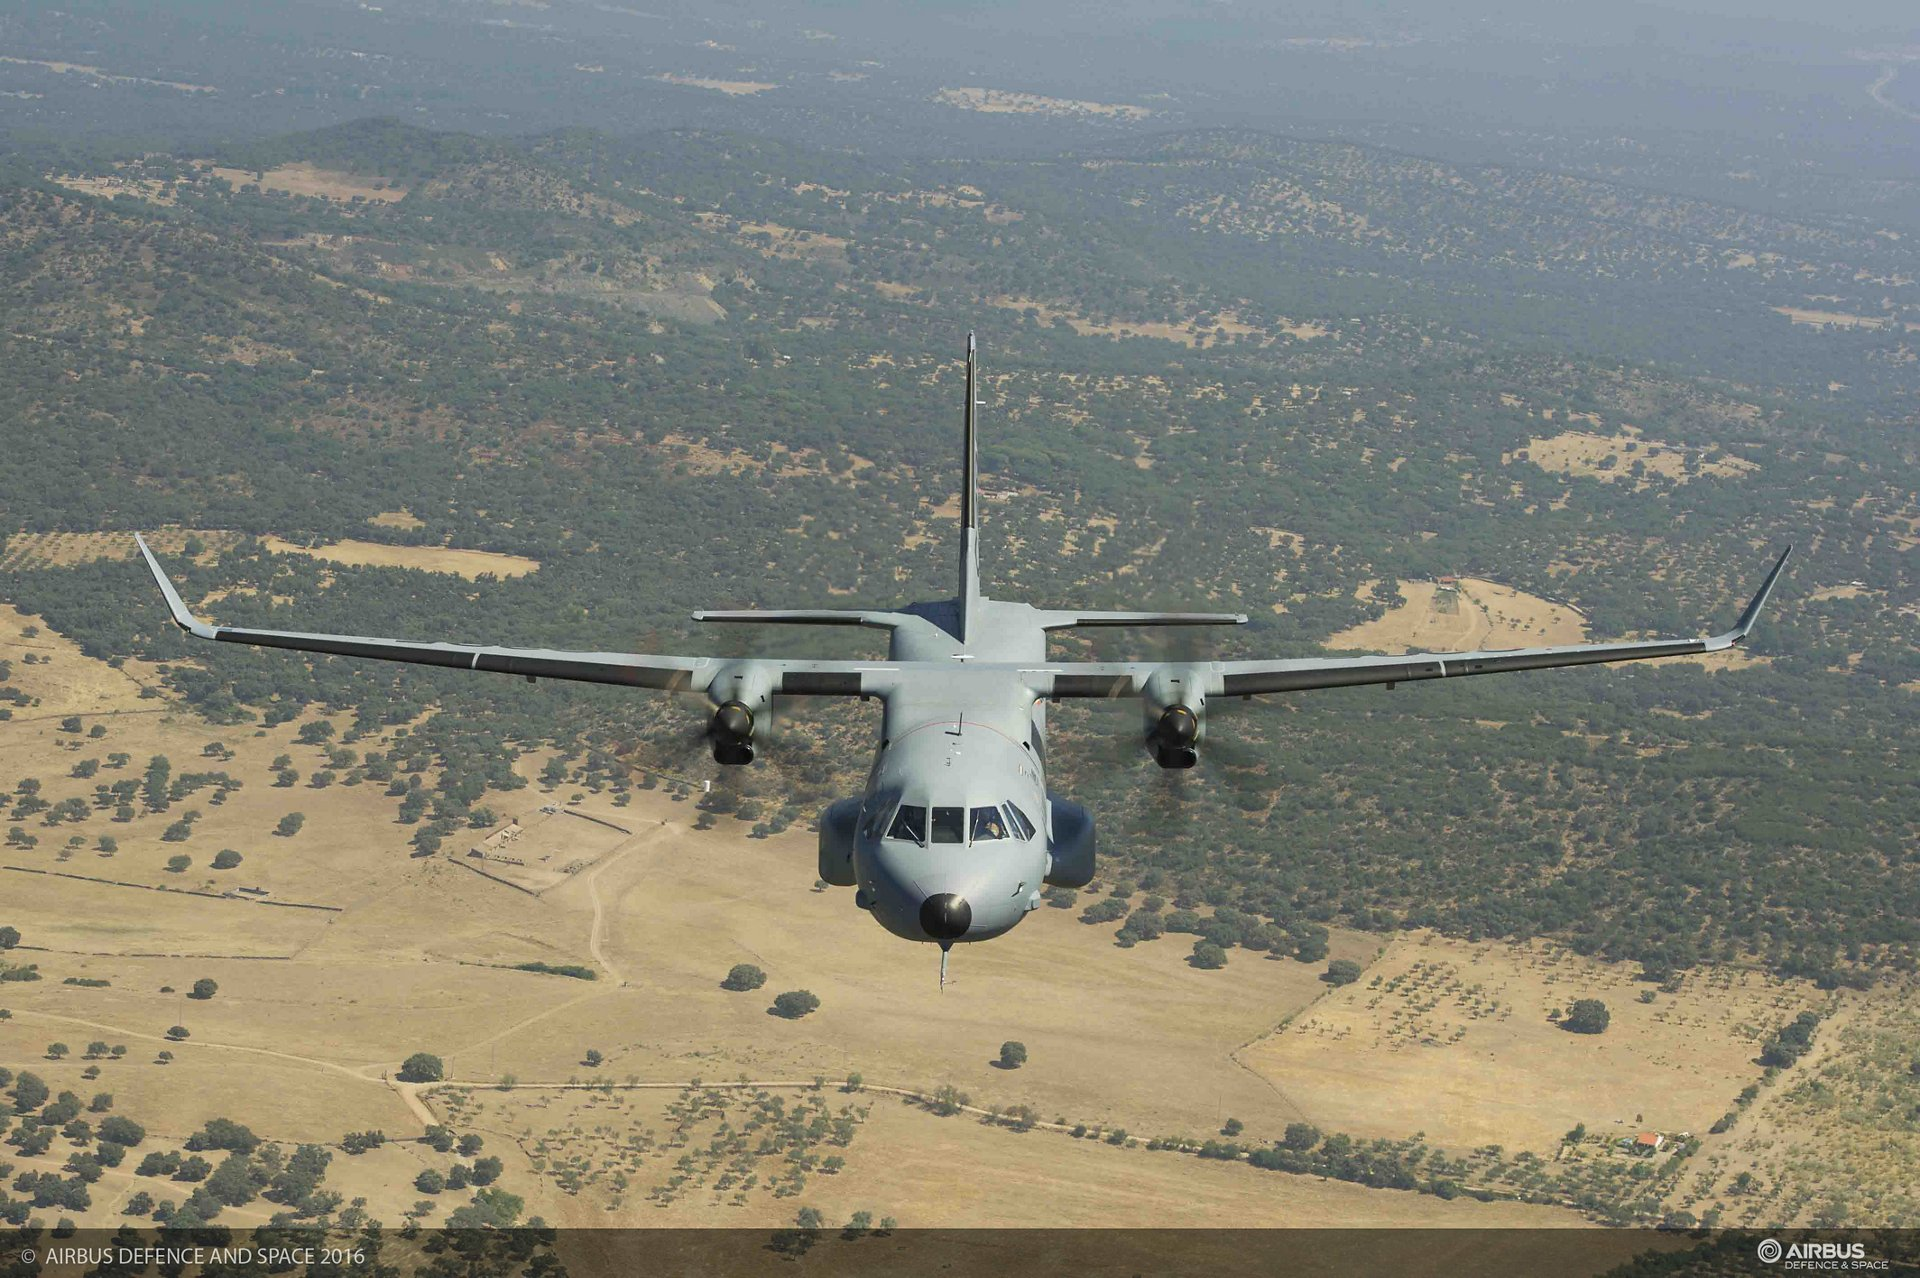 Kazakhstan Border Service places order for Airbus C295